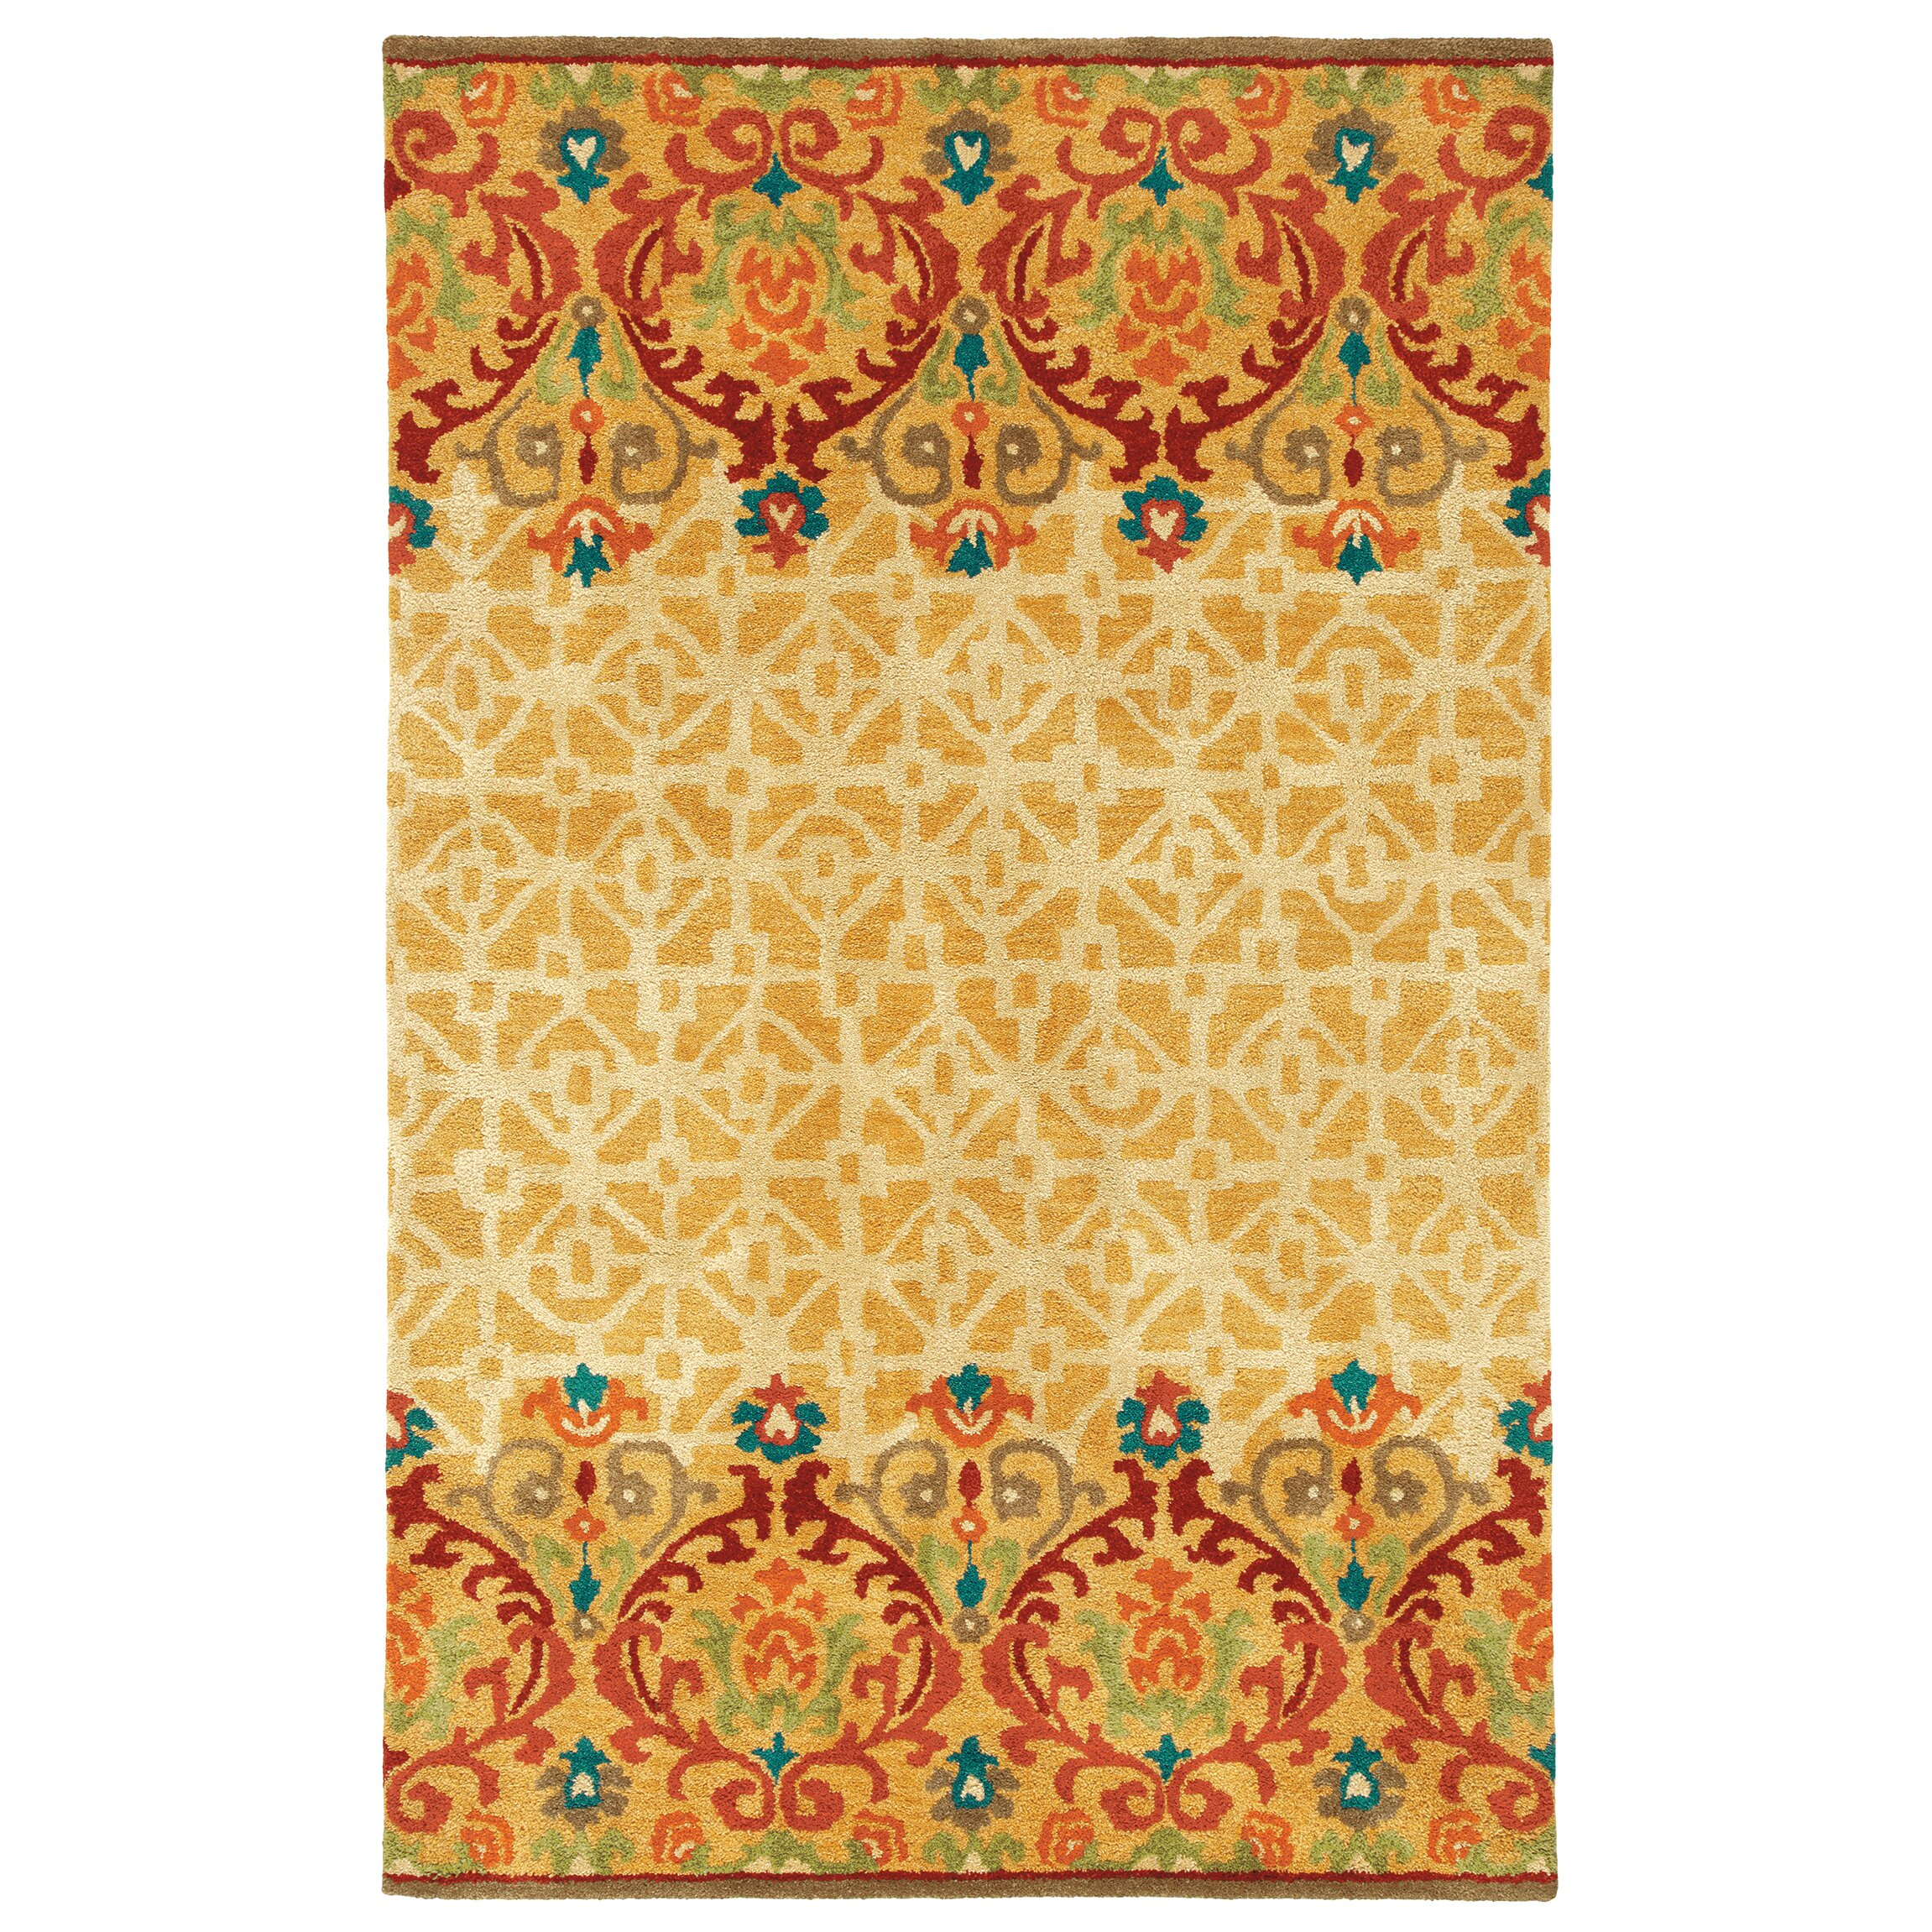 Company c warm as toast caramel area rug reviews wayfair for Warm rugs